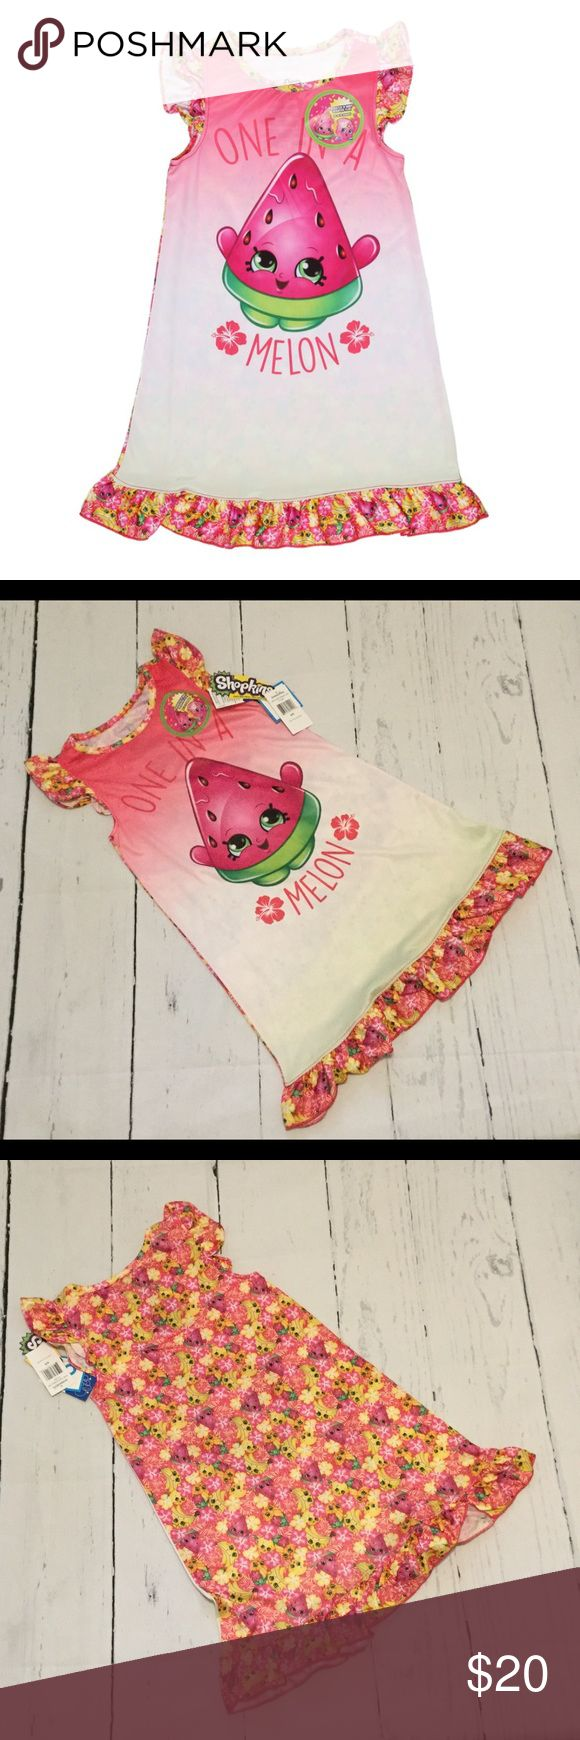 """Shopkins SCENTED🍉 Ruffle Pajama Gown These scented PJs give off a fun berry fresh scent that your little one will love. Seriously so cool. You literally scratch the pajamas and where you scratch smells just like watermelon! A Shopkins fan will flip out over this truly unique pajama ruffle gown.   Reads """"One in a Melon"""" Berry fragrance lasts 10 washes 100% polyester Color: pink By Shopkins Imported Intimo Pajamas Nightgowns"""